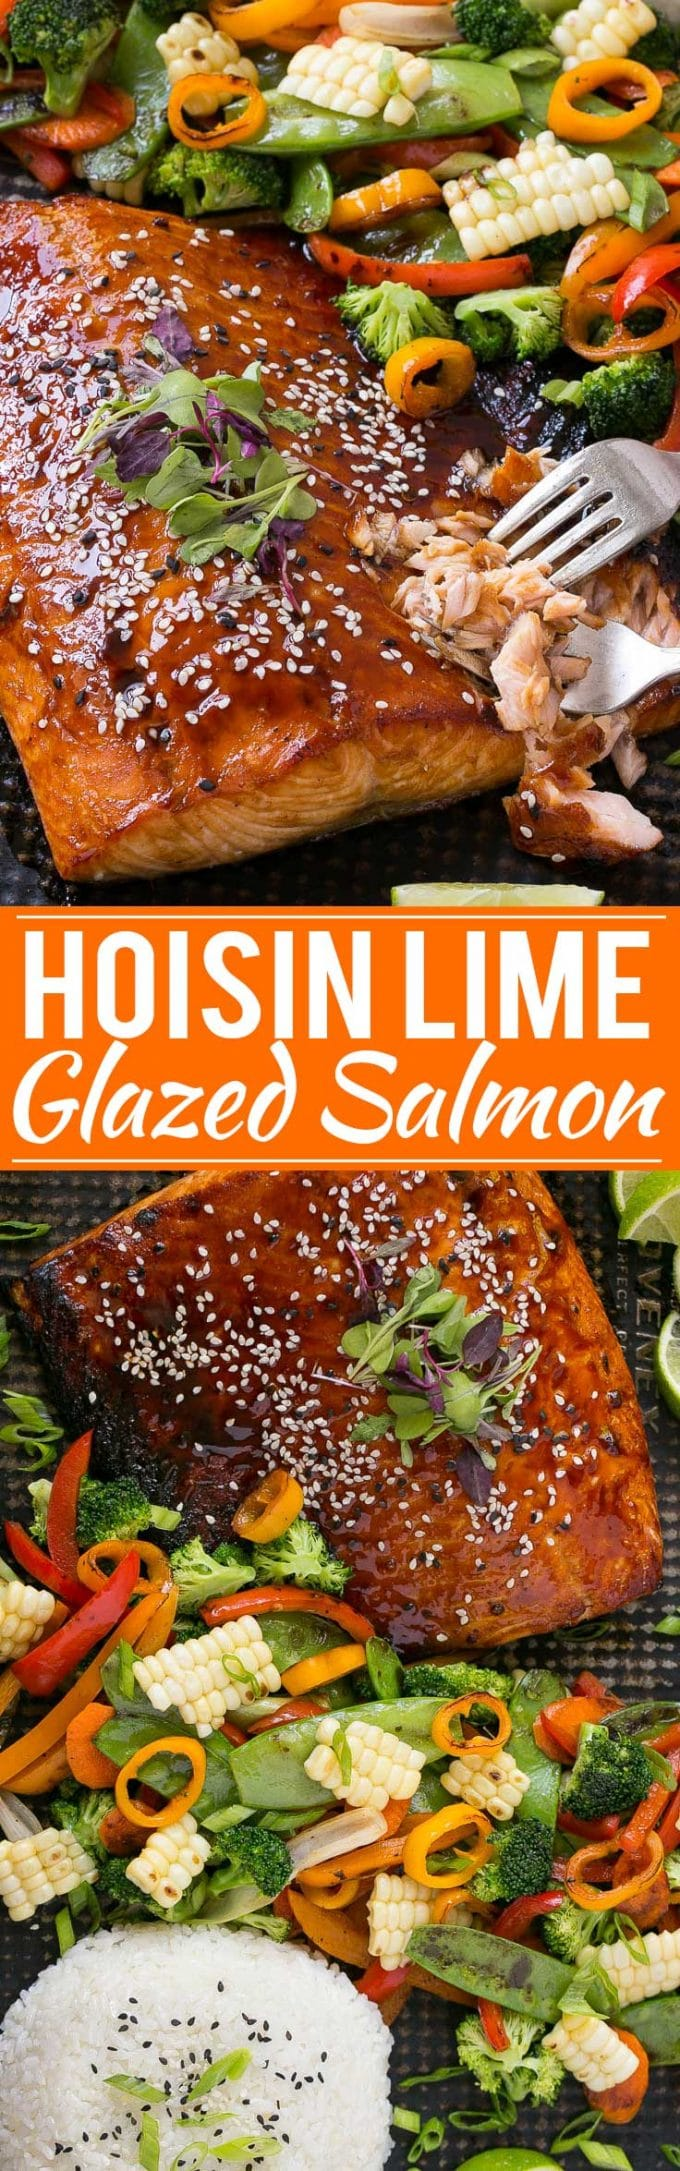 Hoisin Lime Glazed Salmon Recipe | Asian Salmon Recipe | Hoisin Lime Glazed Salmon and Mixed Vegetables | Asian Lime Glazed Salmon | Asian Glazed Salmon | Best Asian Glazed Salmon | Chinese Glazed Salmon